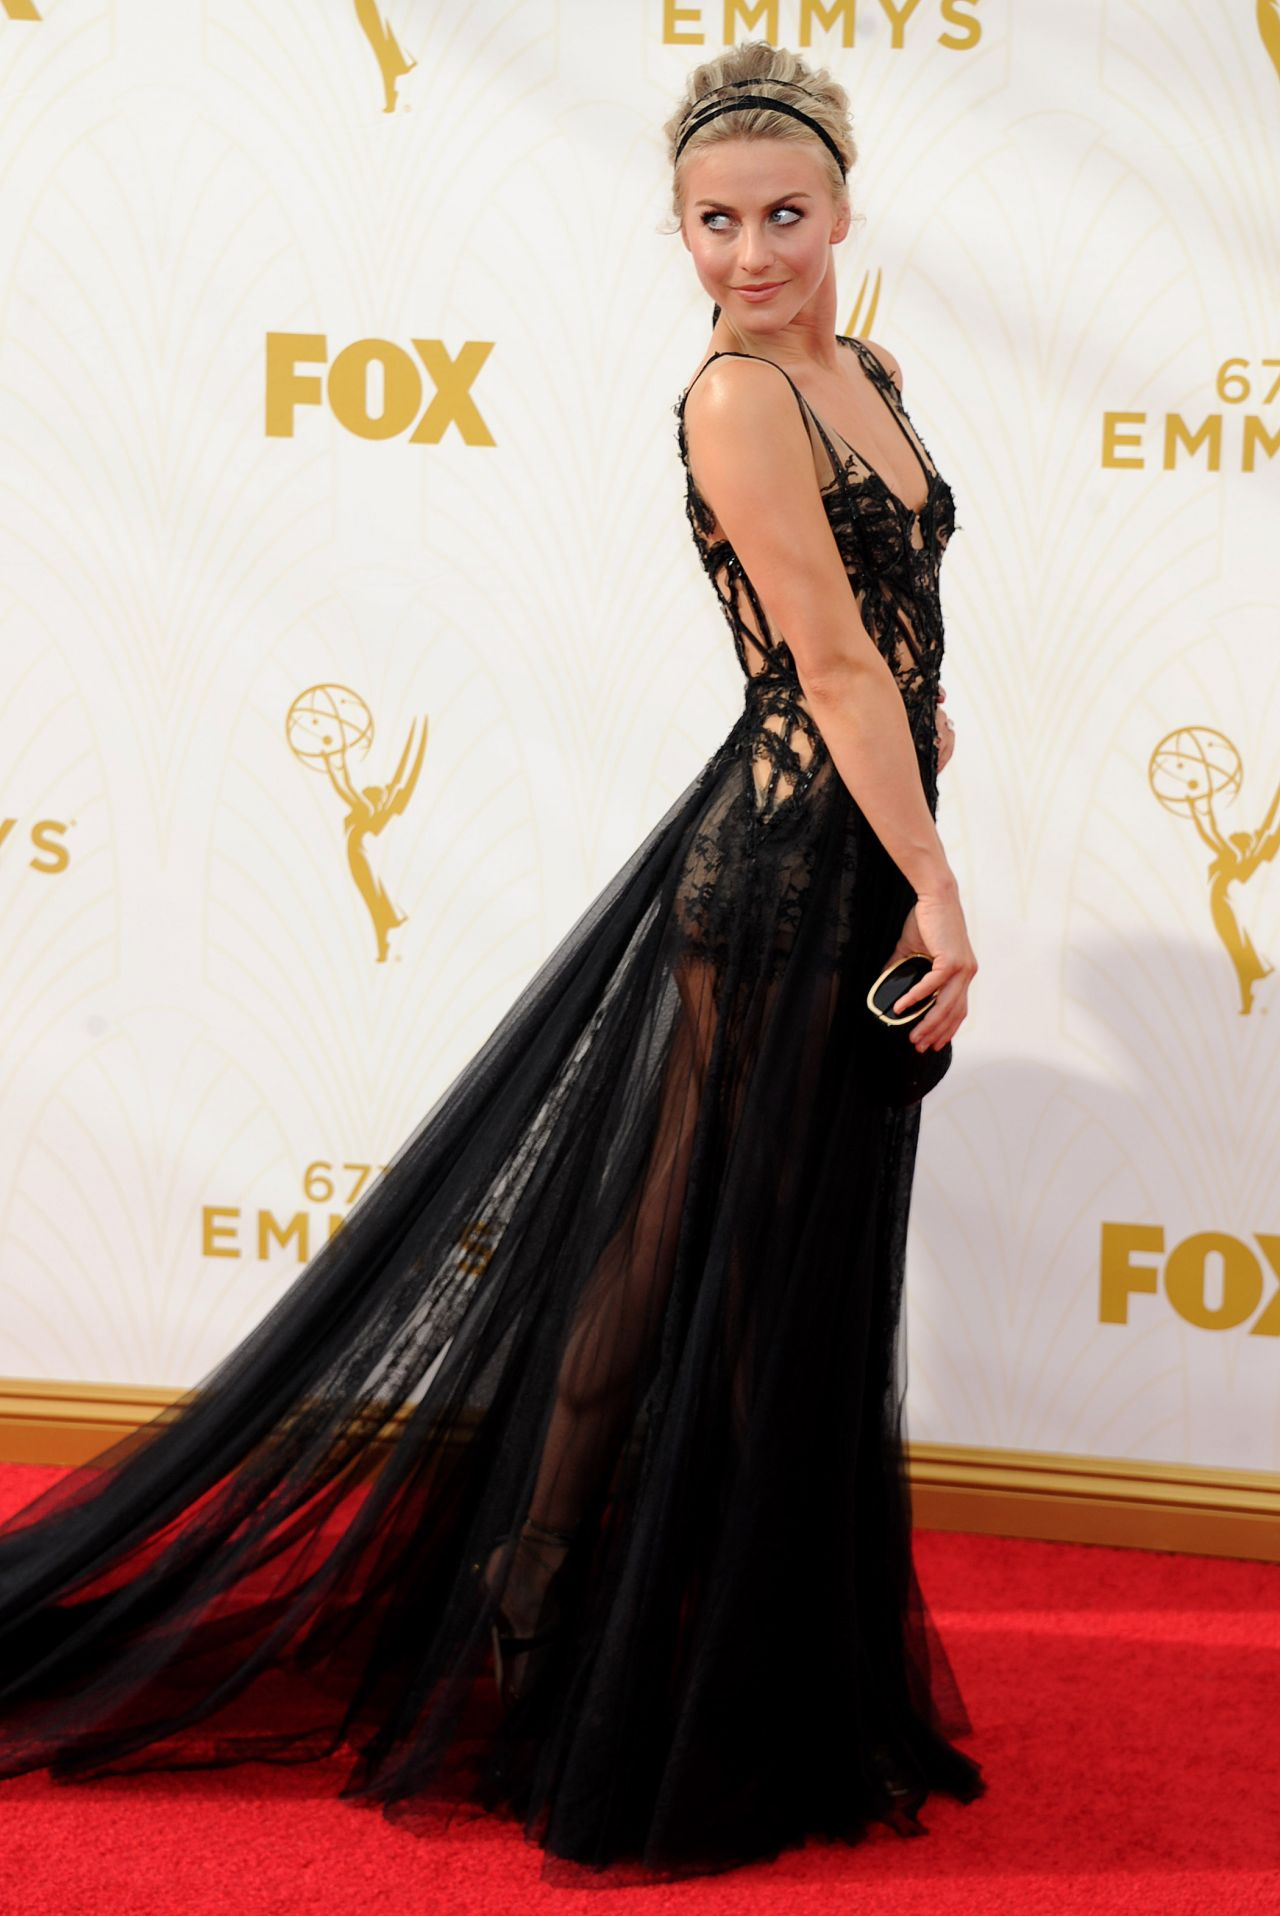 julianne-hough-on-red-carpet-2015-primetime-emmy-awards-in-los-angeles_